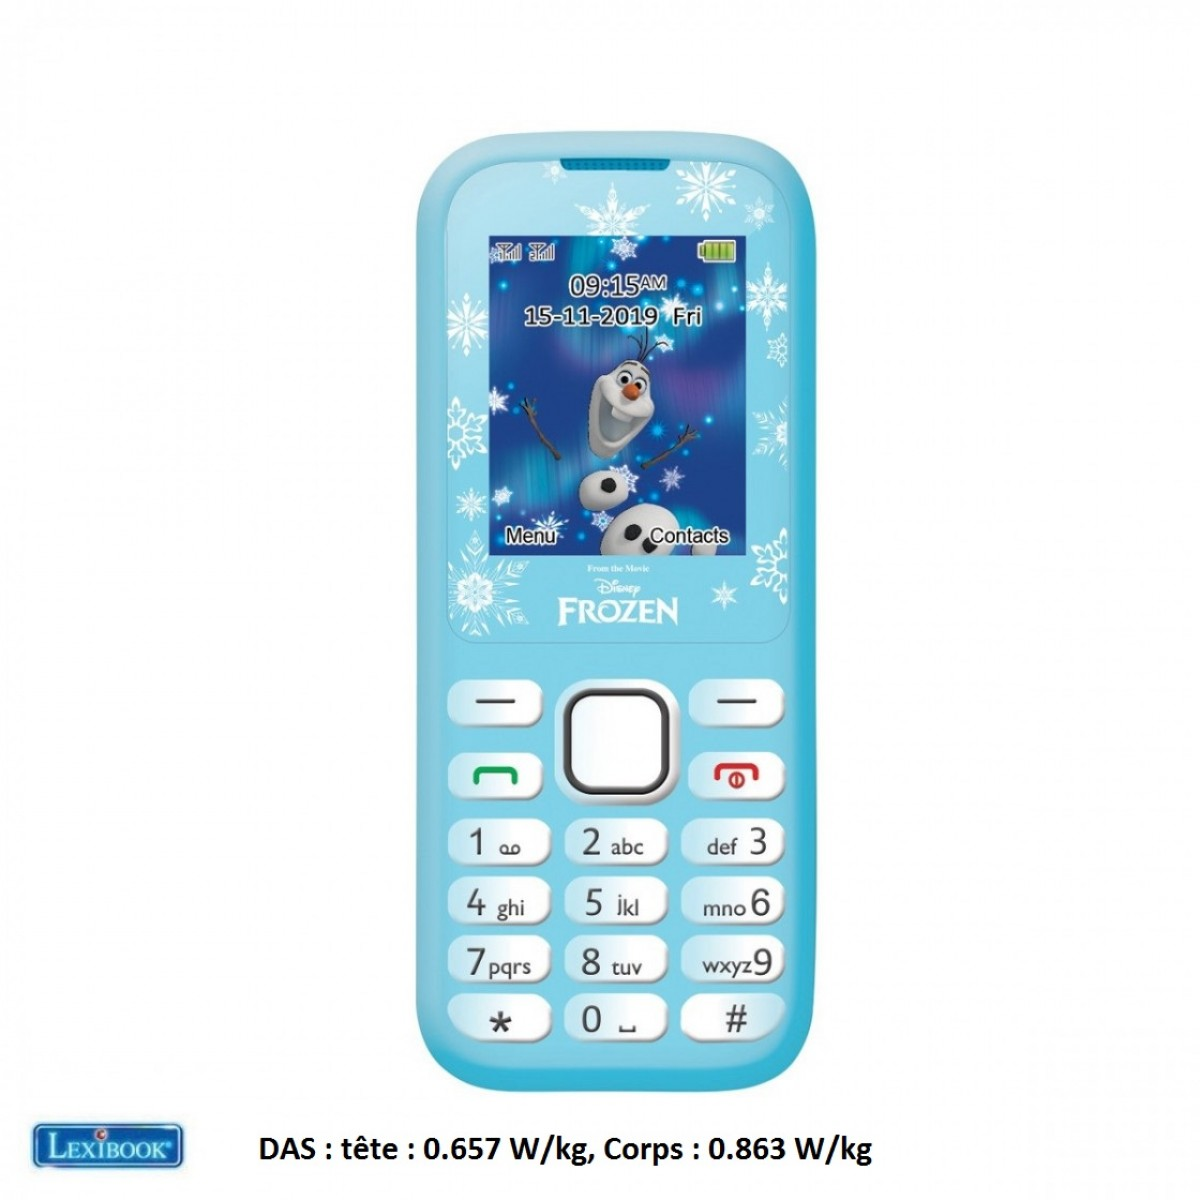 Feature Phone Frozen Olaf